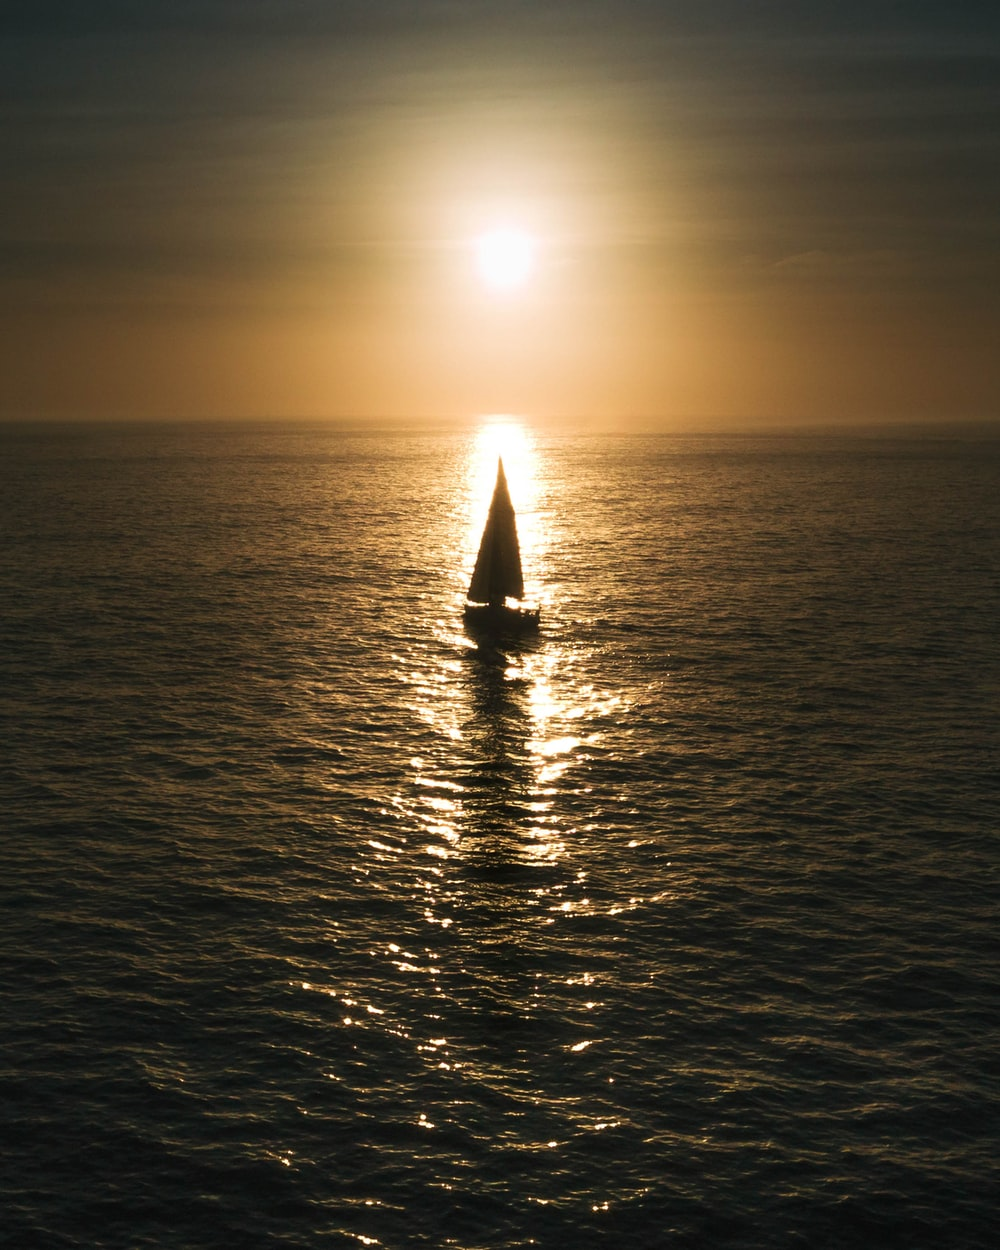 sailboat on calm body of water during golden hour